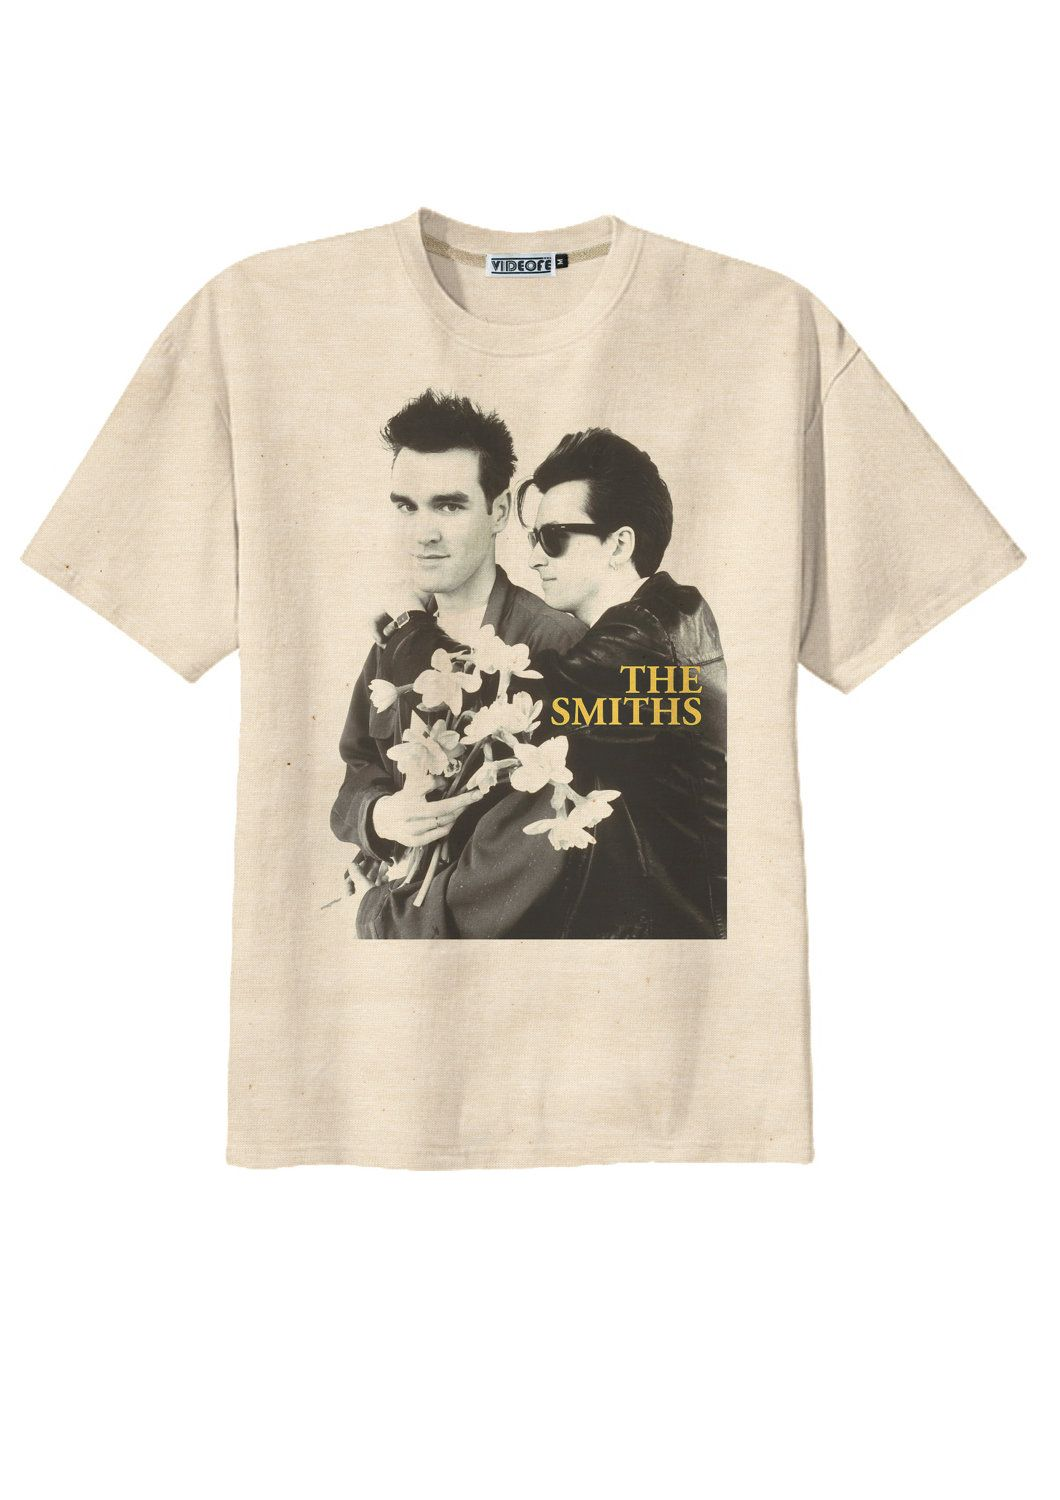 eea4bccee20f Retro The Smiths Morrissey Punk Rock T-Shirt Tee Organic Cotton Vintage  Look Size S M L. $14.00, via Etsy.